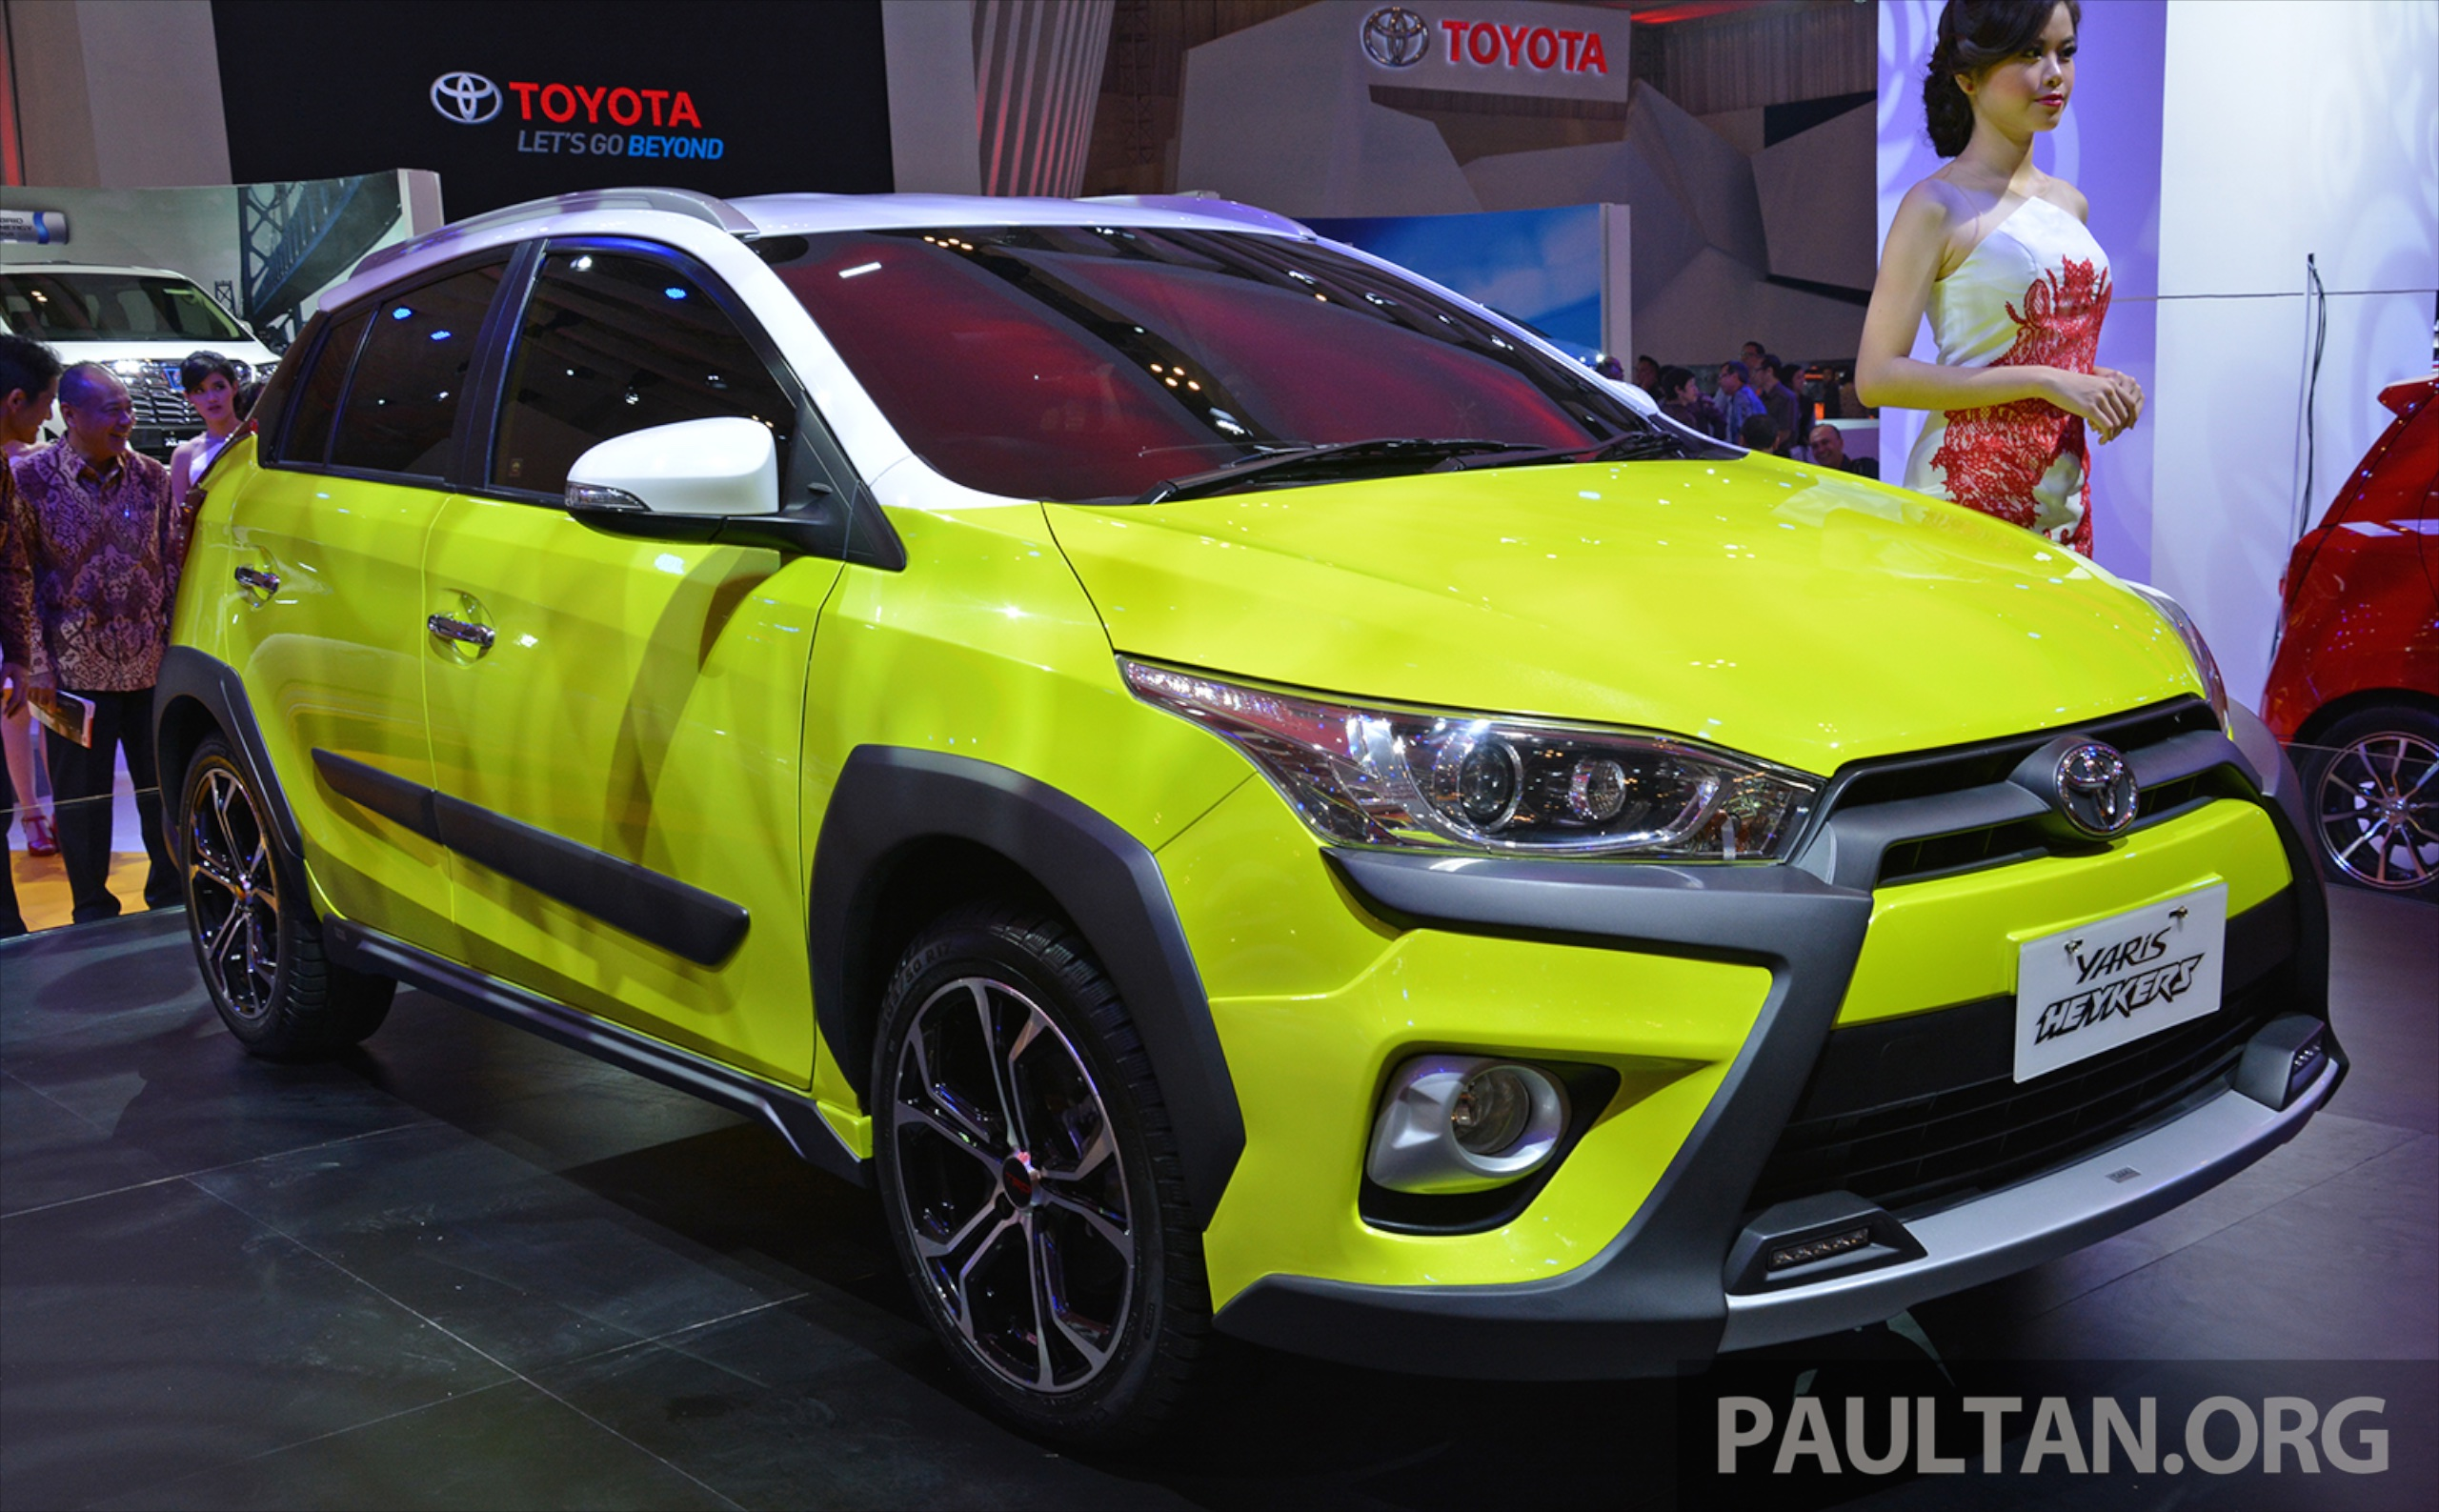 toyota yaris trd heykers grand new avanza vs mobilio giias 2015 concept suv looks